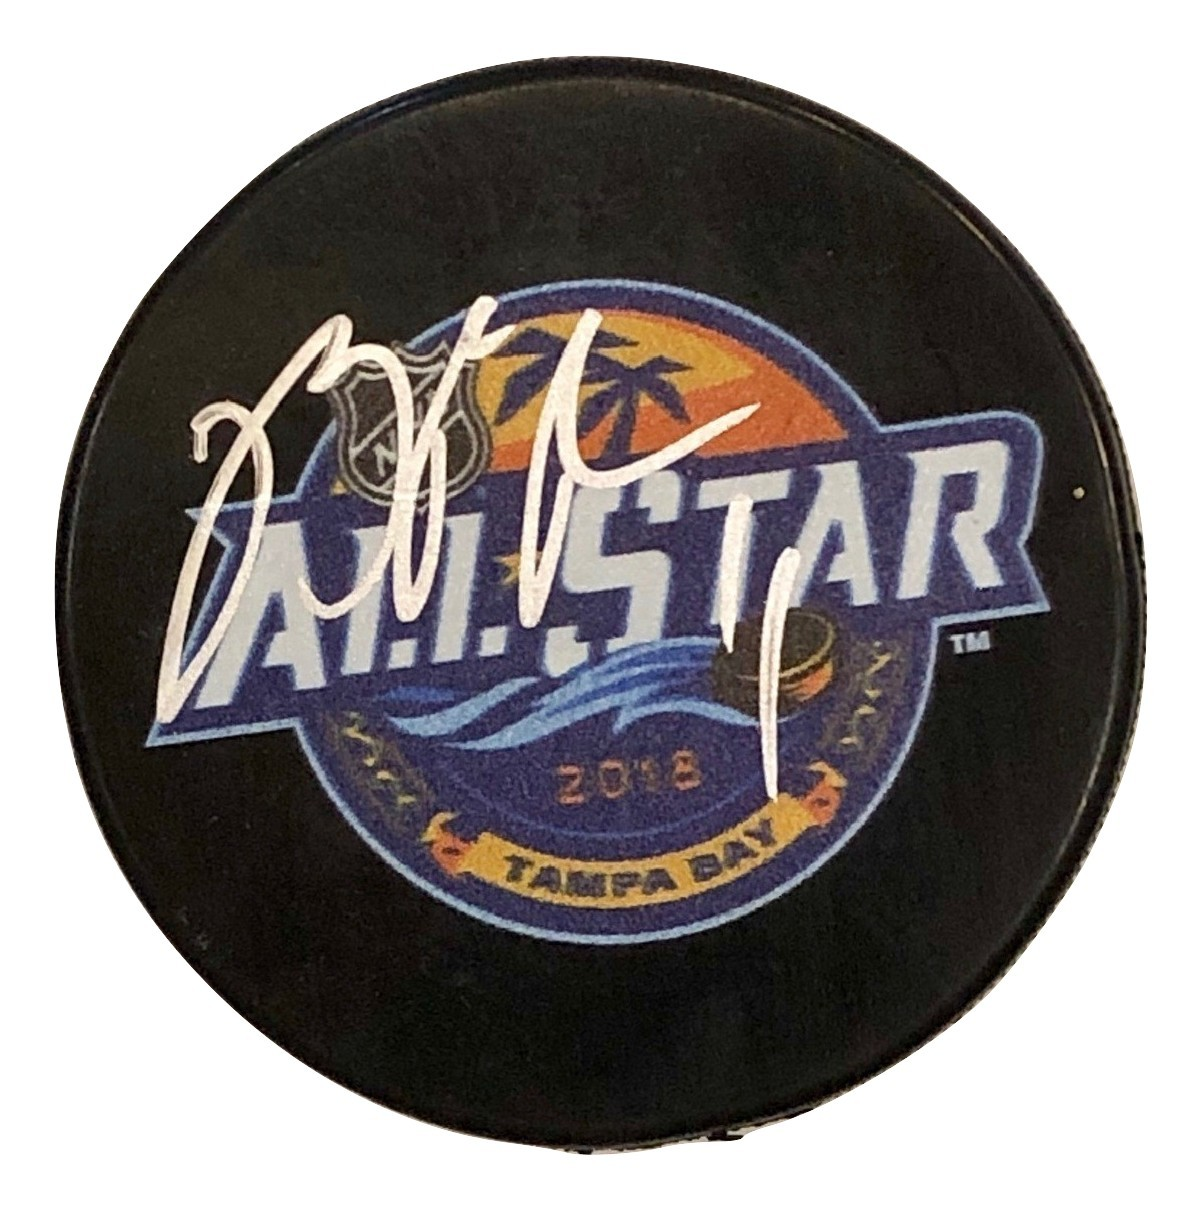 BRIAN BOYLE AUTOGRAPHED HAND SIGNED 2018 ALL-STAR PUCK New Jersey DEVILS w/COA - $49.99